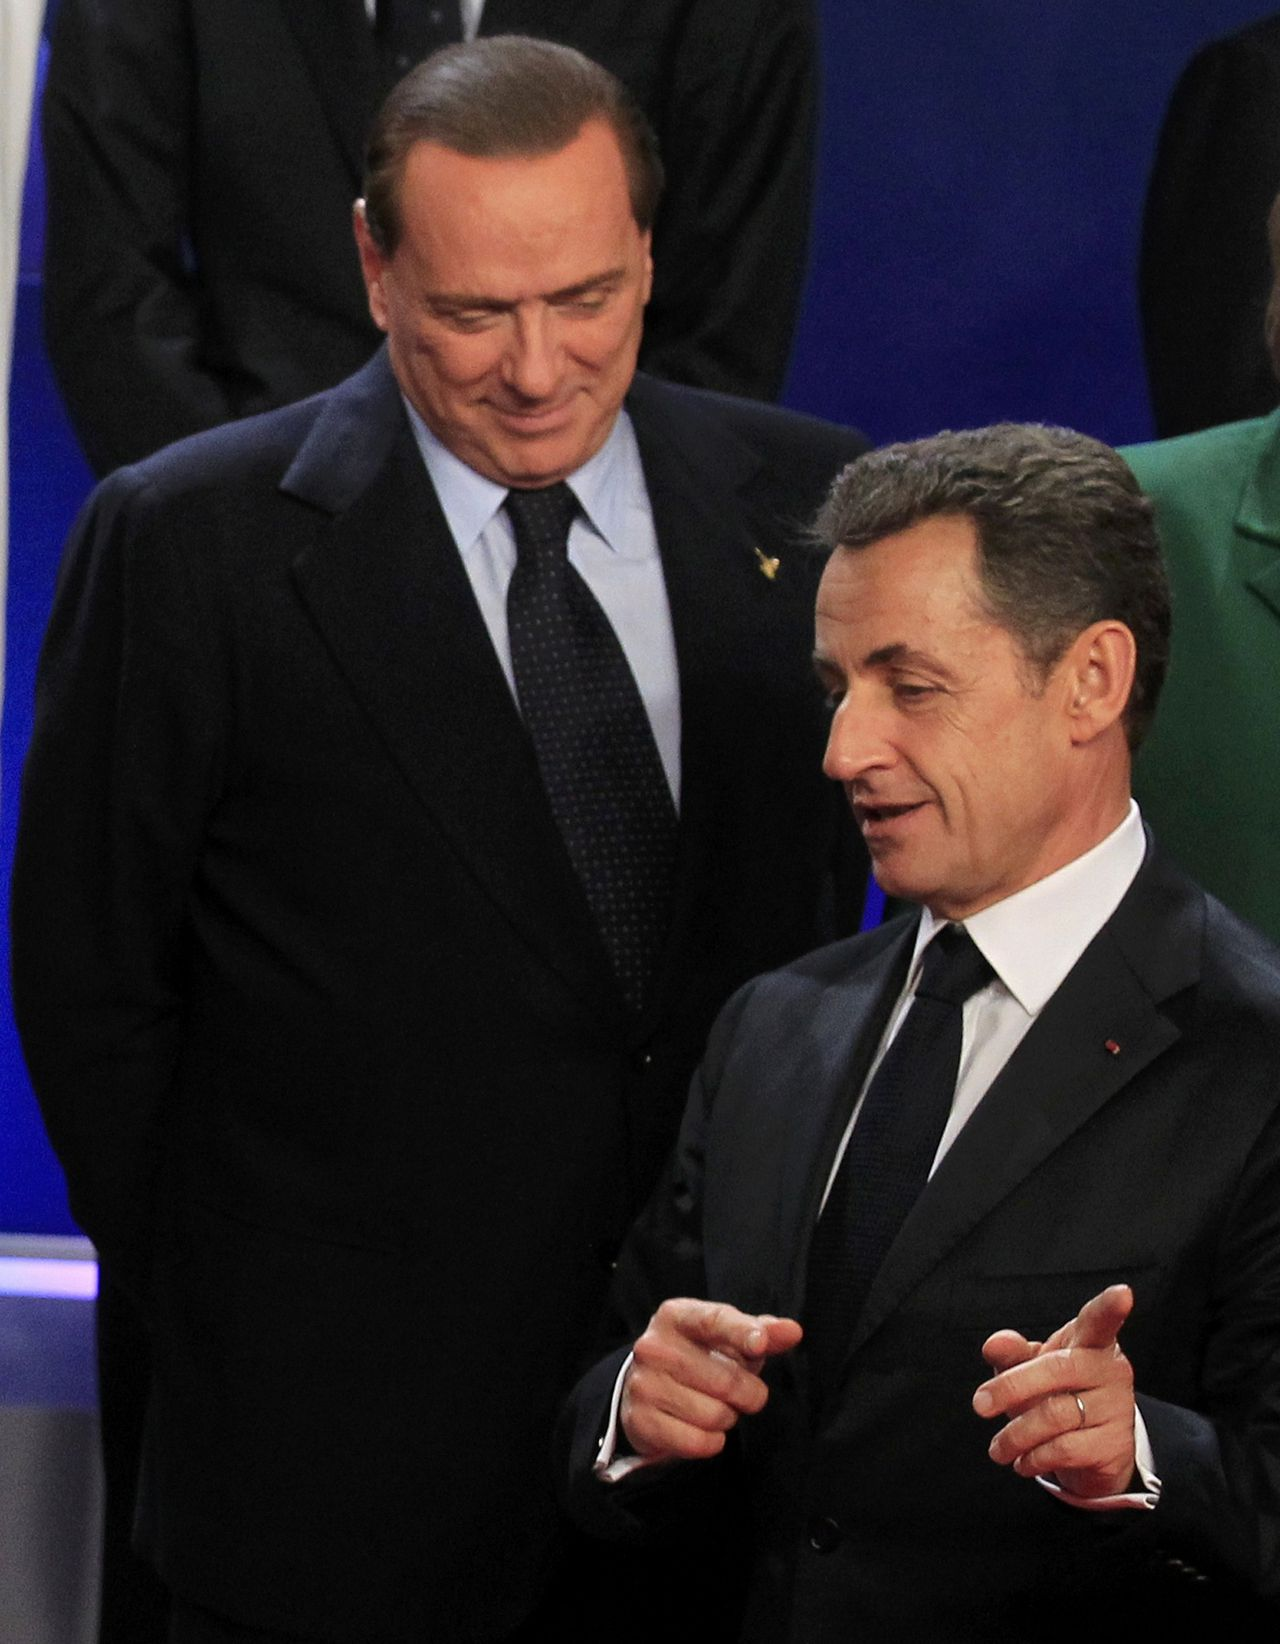 France's President Nicolas Sarkozy (R) speaks with Italy's Prime Minister Silvio Berlusconi during the traditional family photo during the G20 Summit of major world economies in Cannes November 3, 2011. REUTERS/Yves Herman (FRANCE - Tags: POLITICS)